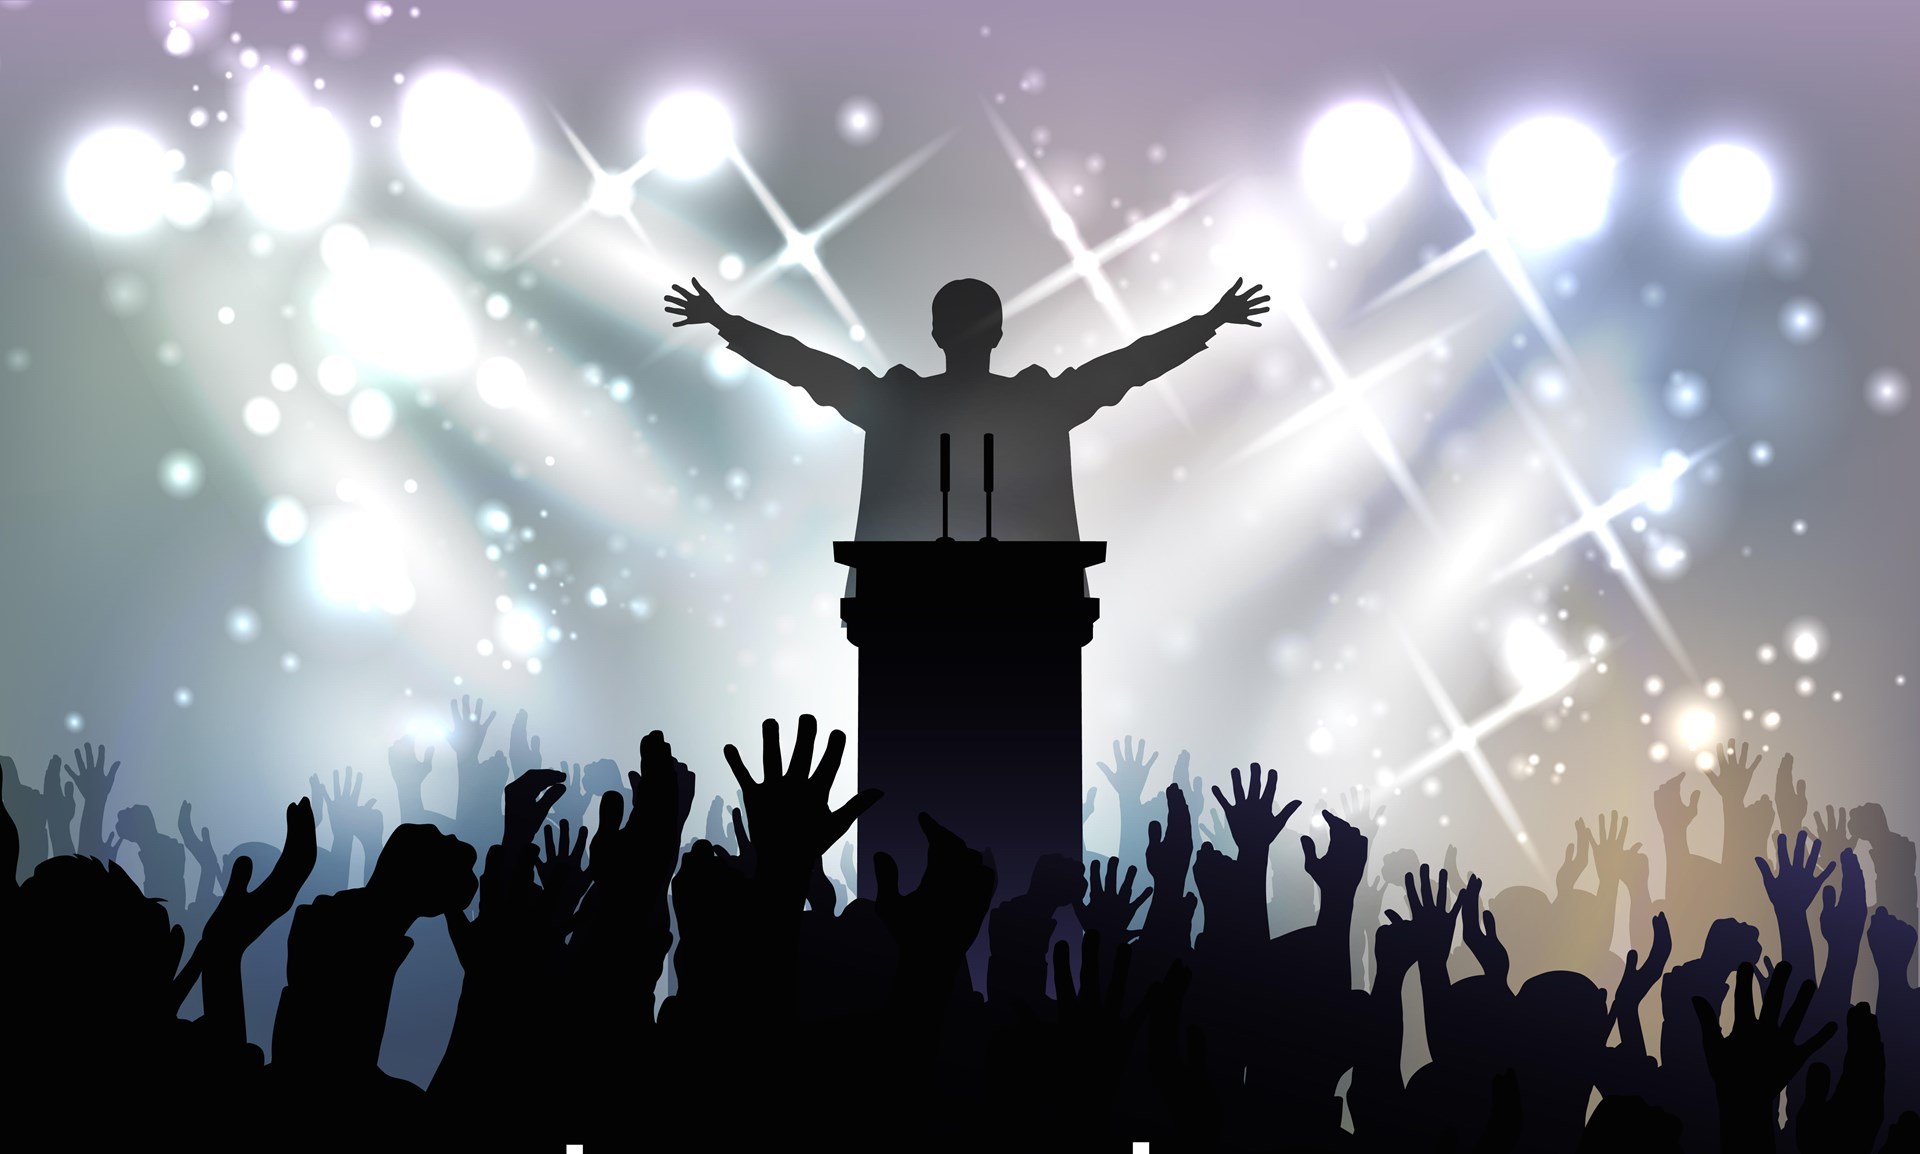 politician_speech_excited_cheering_crowd-2_mini.jpg?anchor=center&mode=crop&width=1920&rnd=131370854140000000